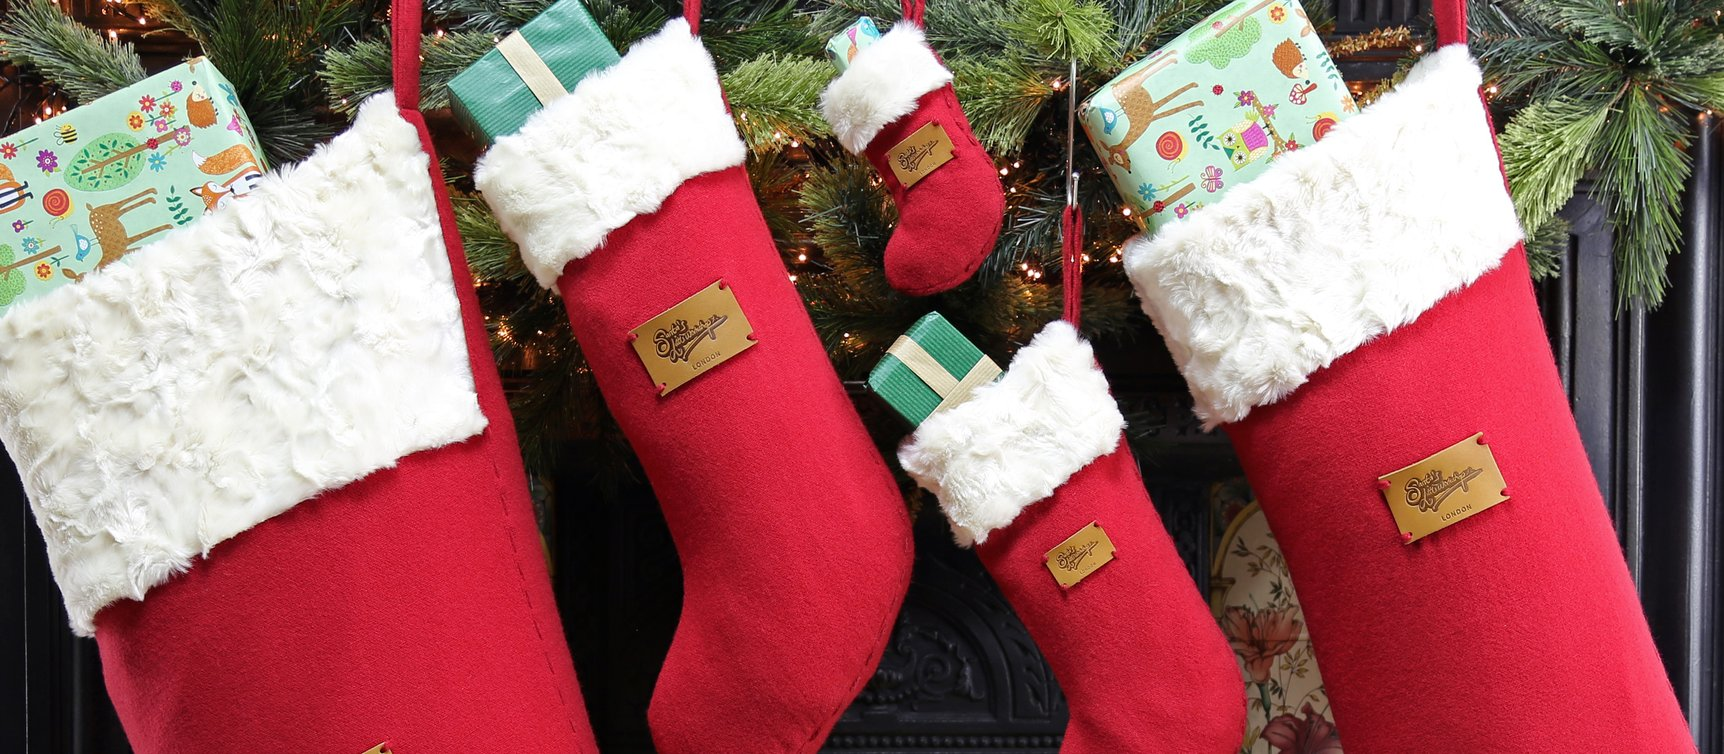 High quality Personalised Christmas stockings